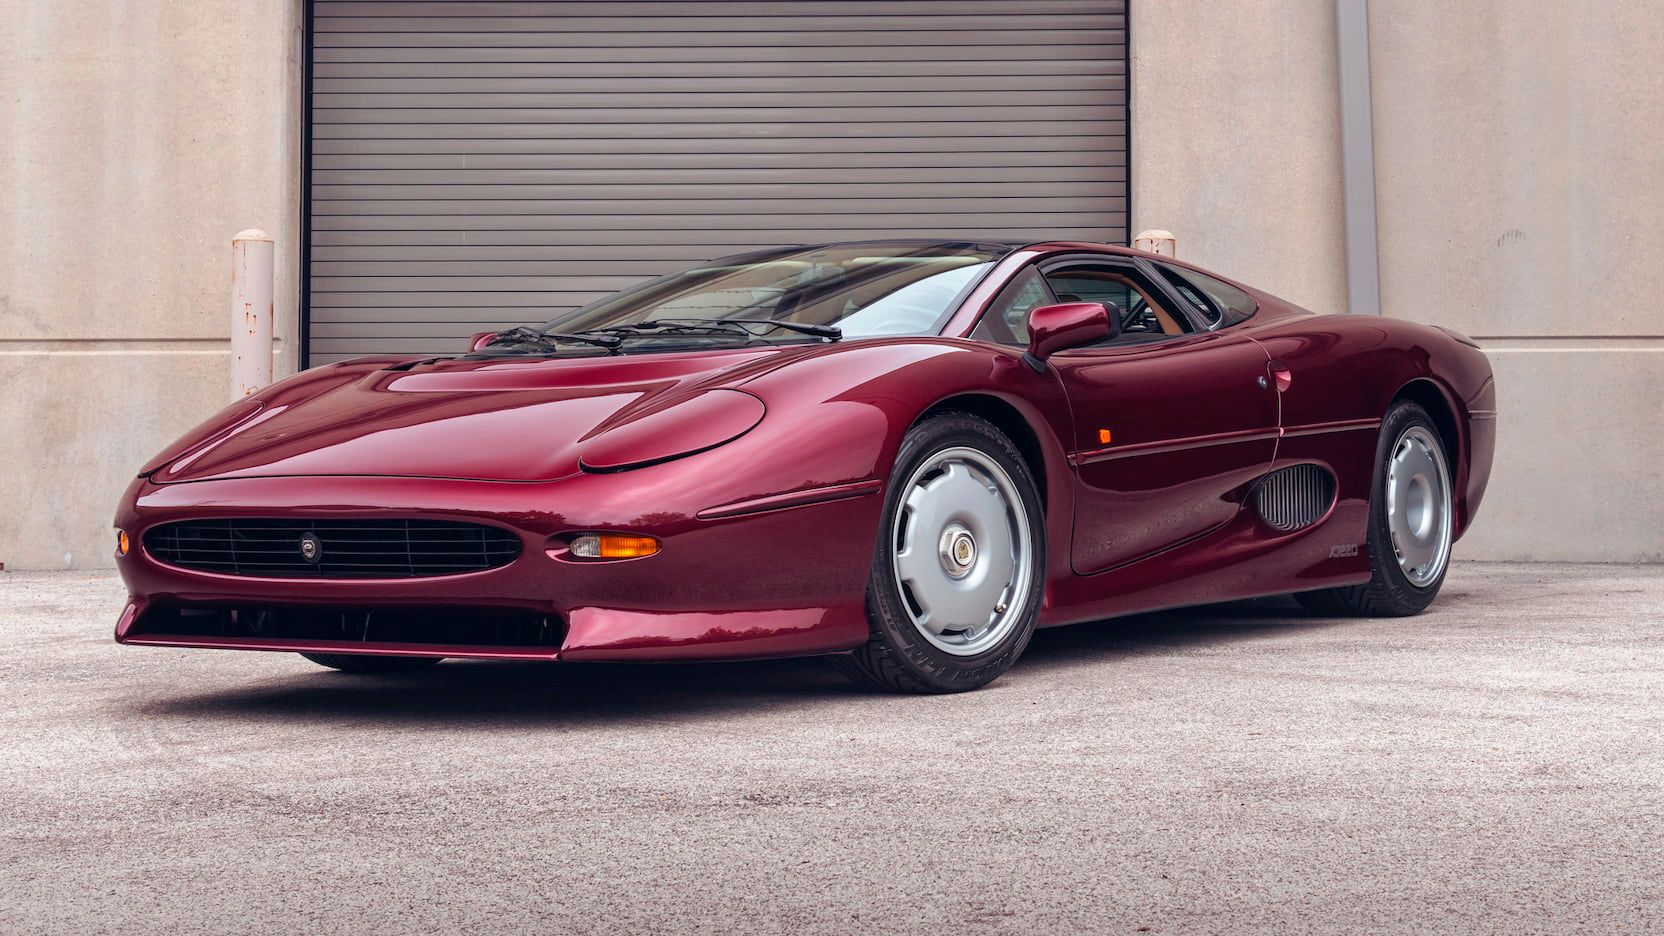 10 Coolest European Sports Cars That Flopped Miserably | HotCars